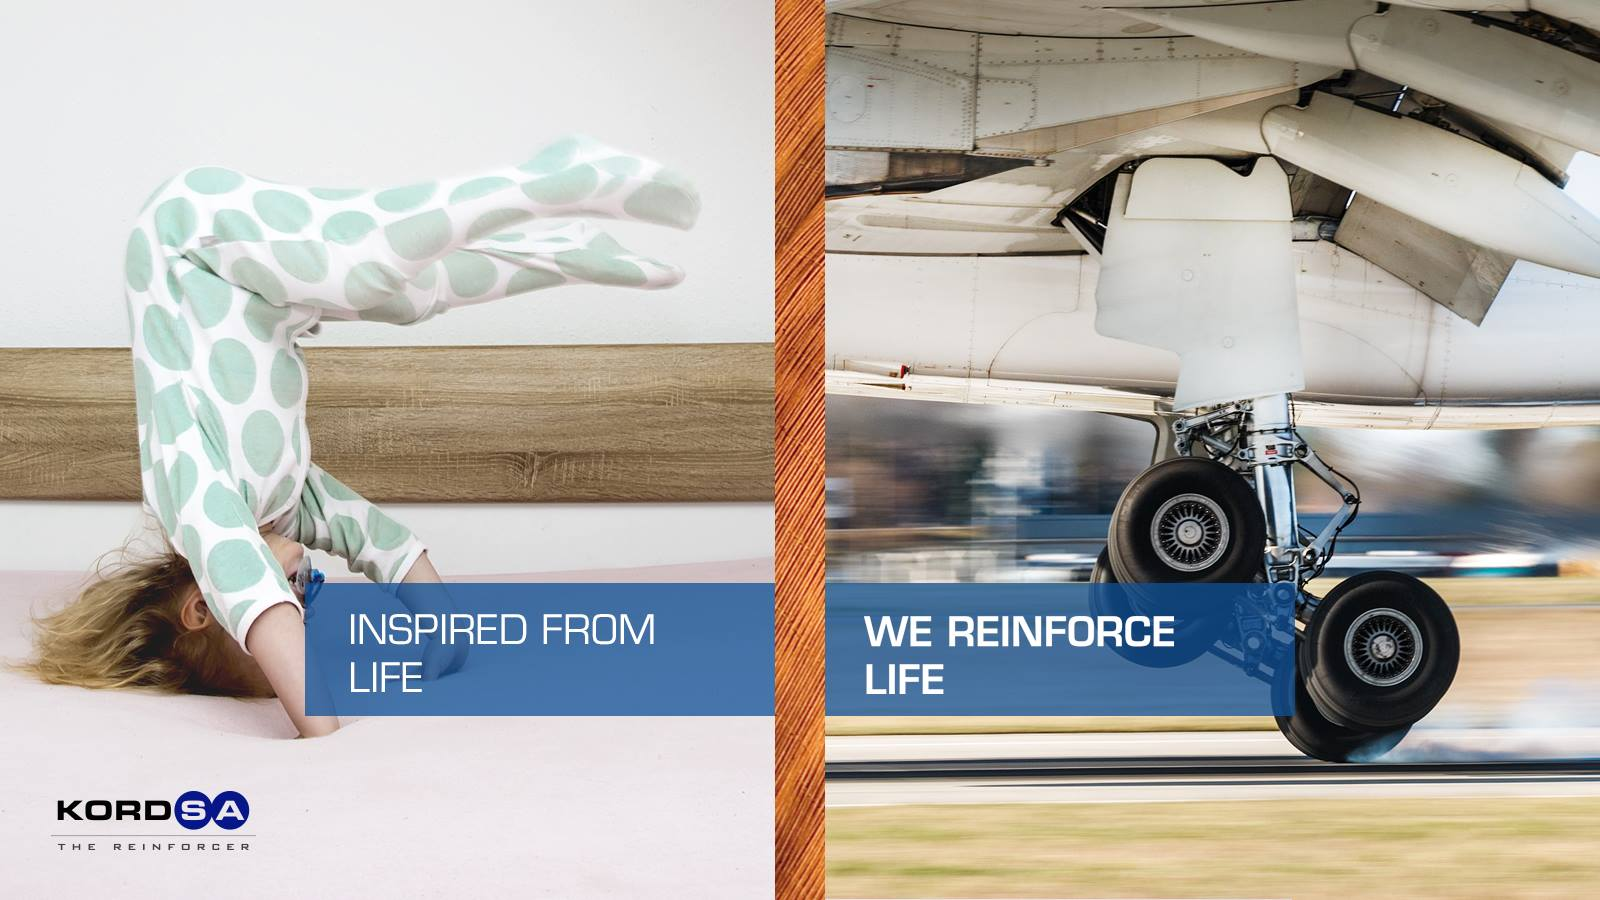 """Inspired from life, we reinforce life"" says Kordsa's new campaign"